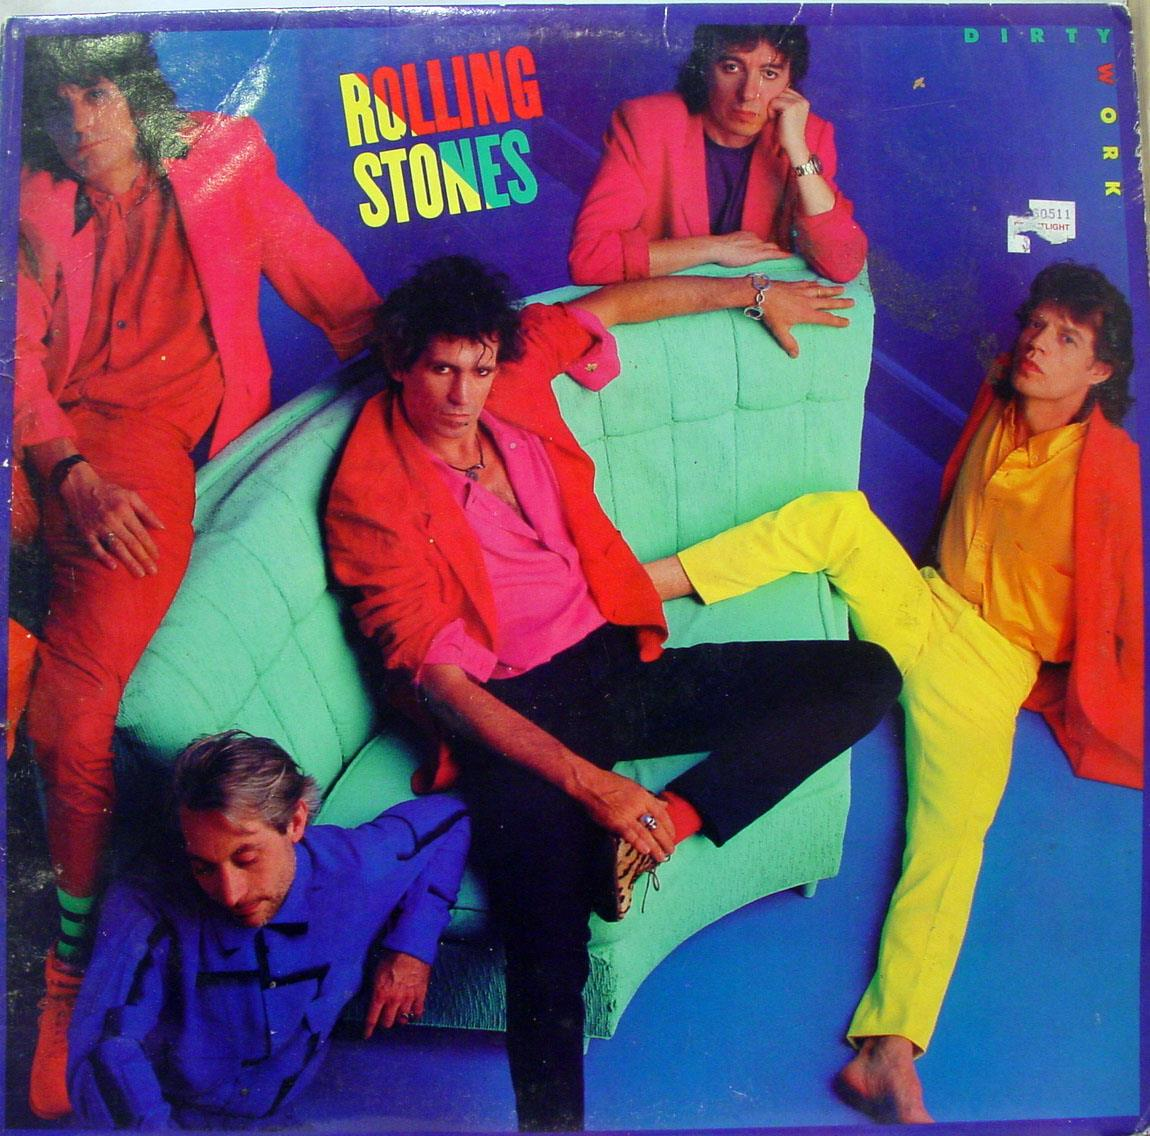 Rolling Stones - The Rolling Stones Dirty Work Lp Vg Oc 40250 Bob Ludwig Rl Mastered Usa 1986 (dirty Work)